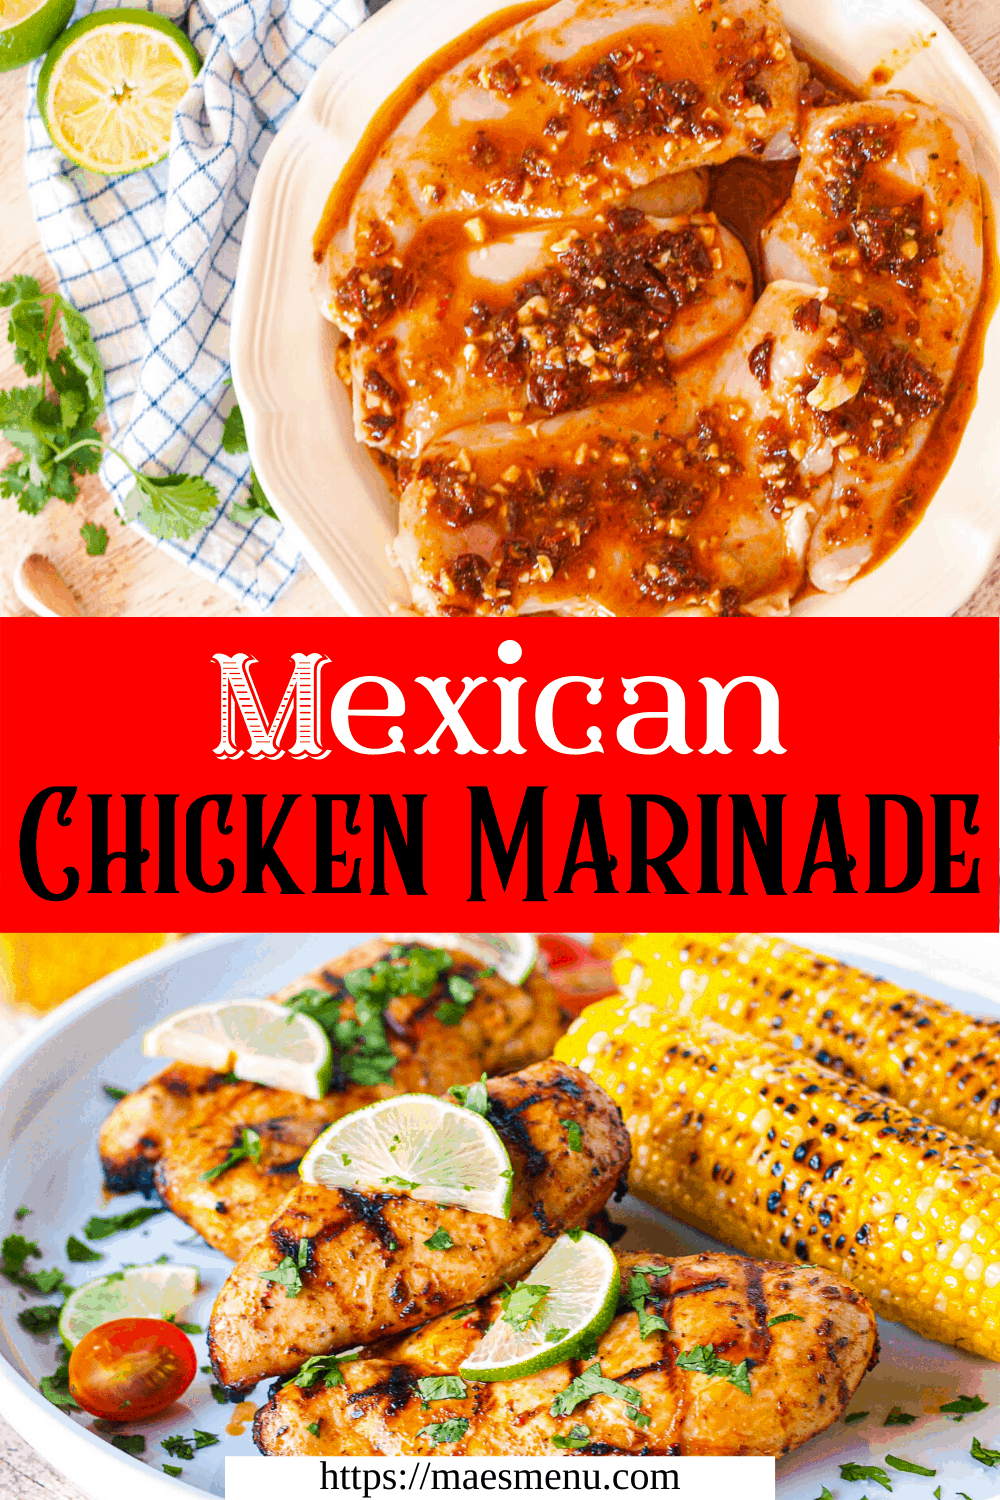 A pinterest pin for Mexican Chicken Marinade. On the top is a plate of marinating chicken. On the bottom is a plate of grilled chicken next to two ears of corn.